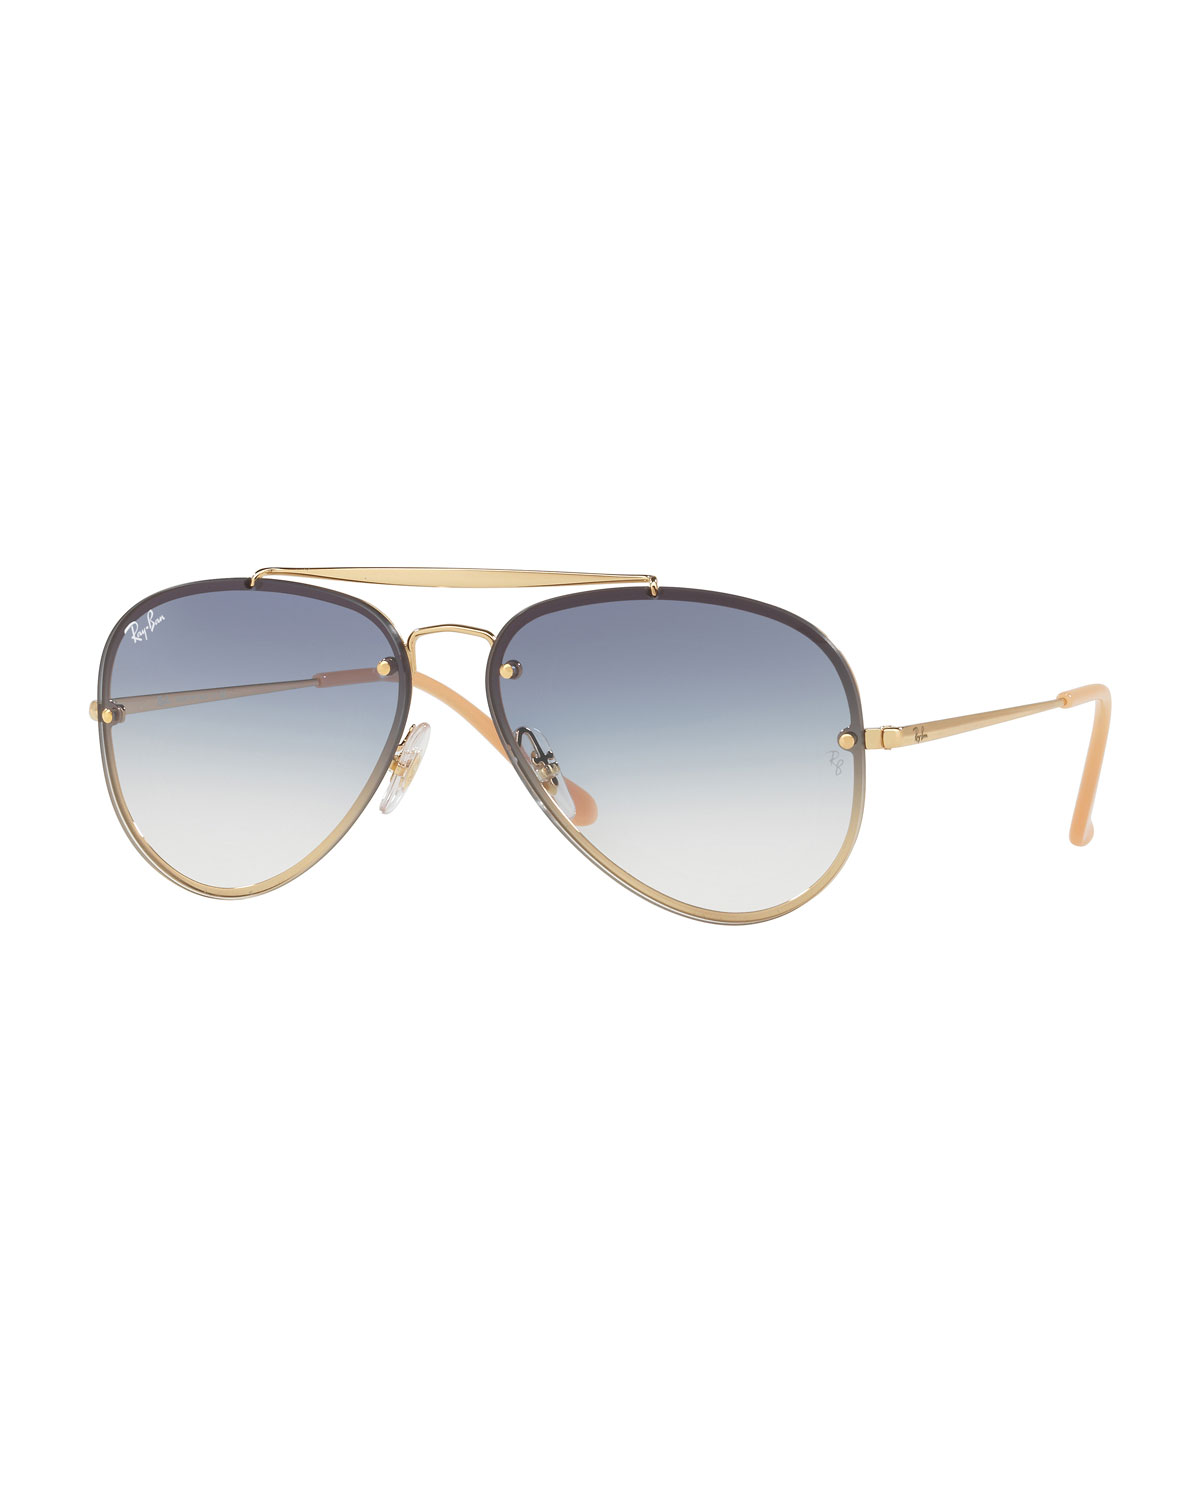 cbf298d47f4 Ray-Ban Brow Bar Aviator Sunglasses